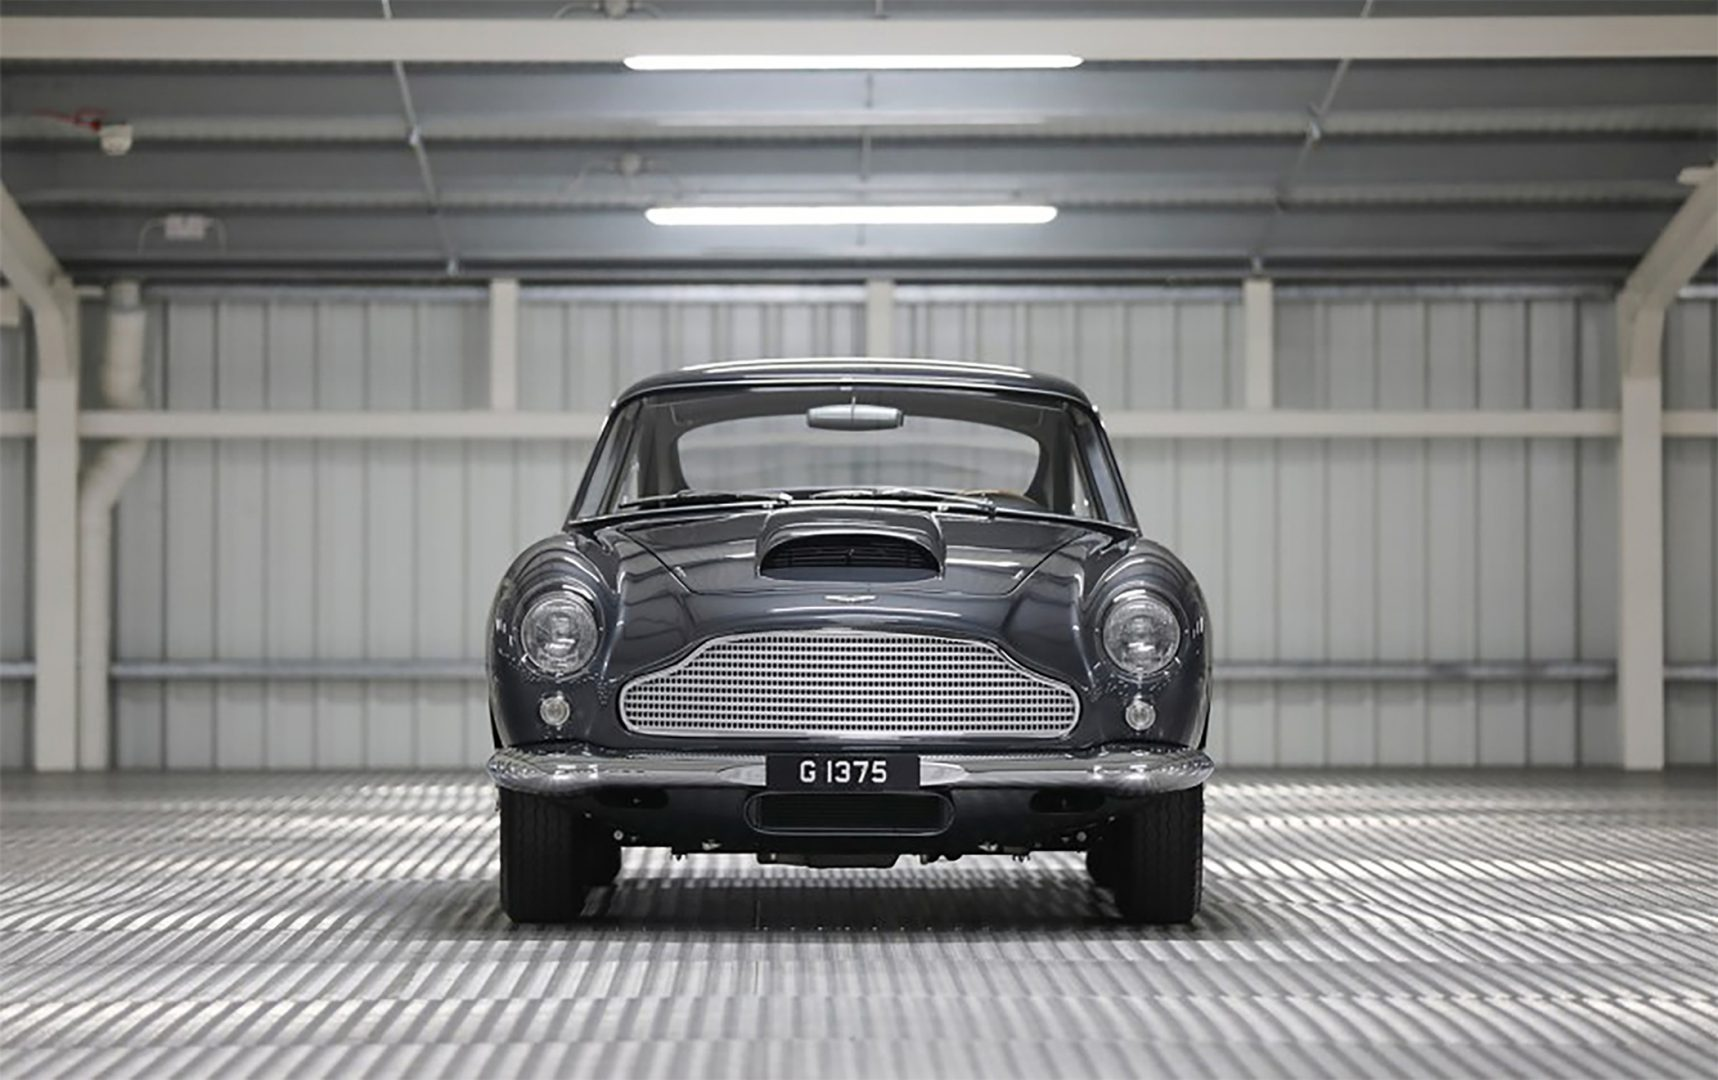 Silver 1961 Aston Martin DB4GT Front View Driver Side, Buying an Aston Martin, pfs_leasing